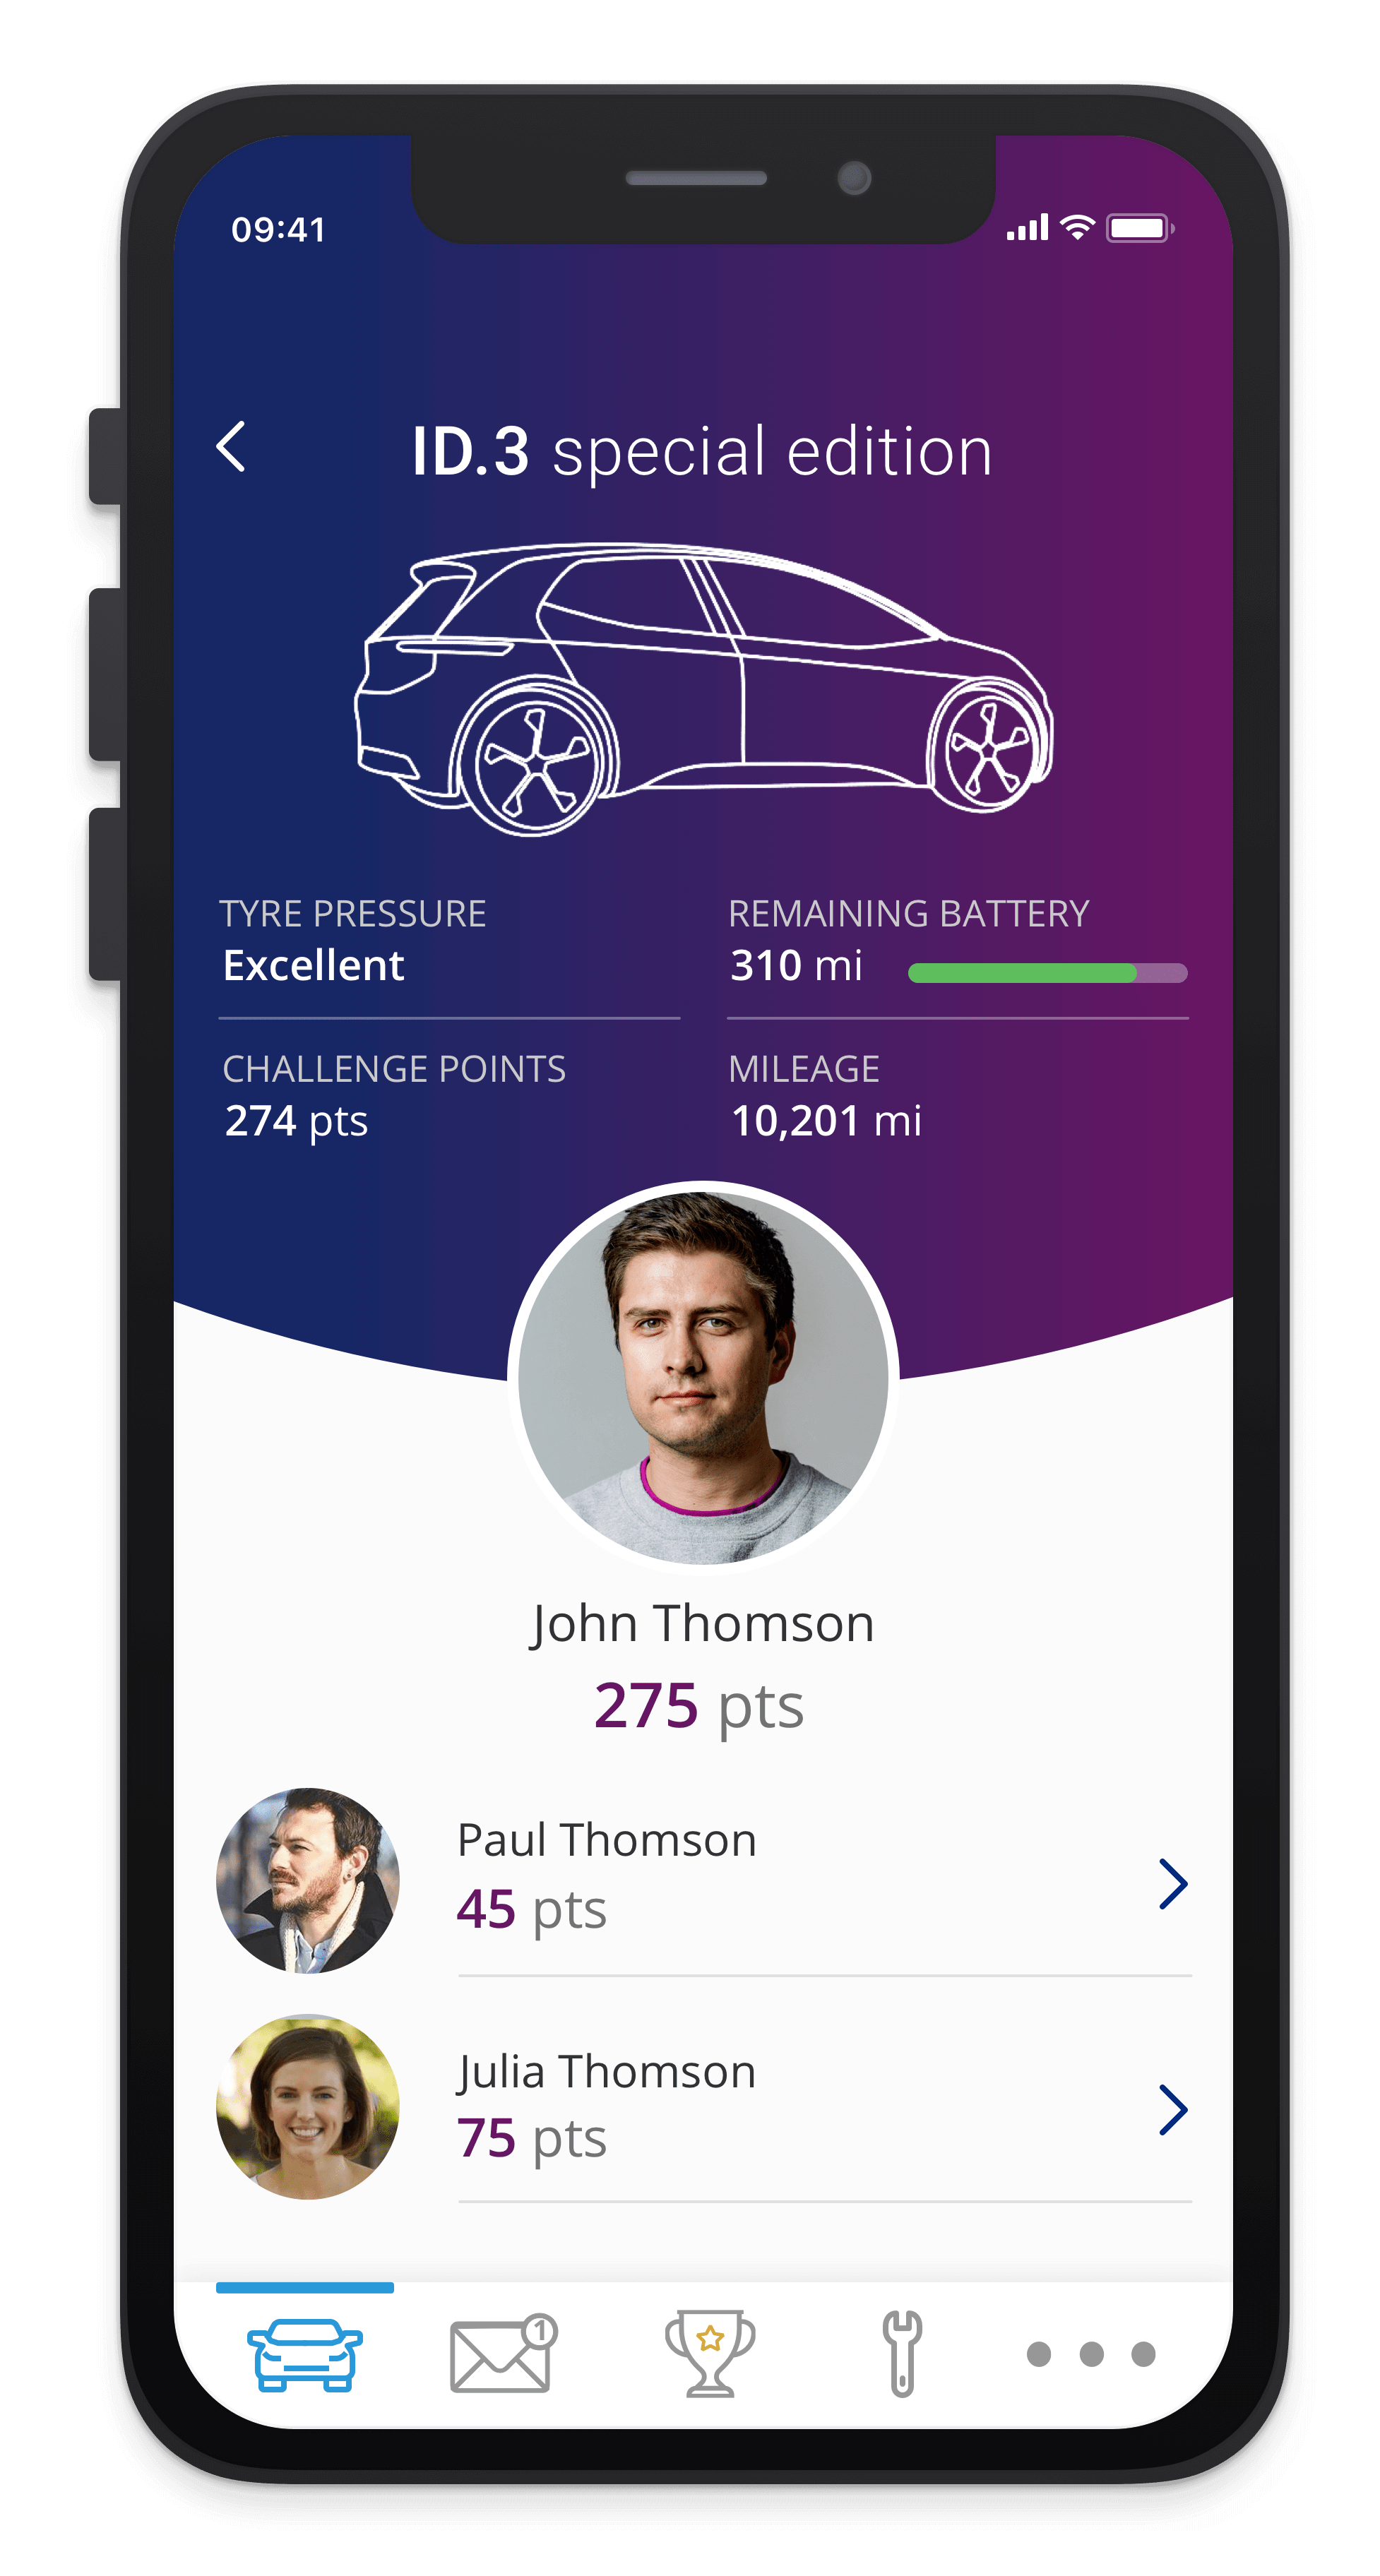 VW-no-issue-iPhone-mockup@2x